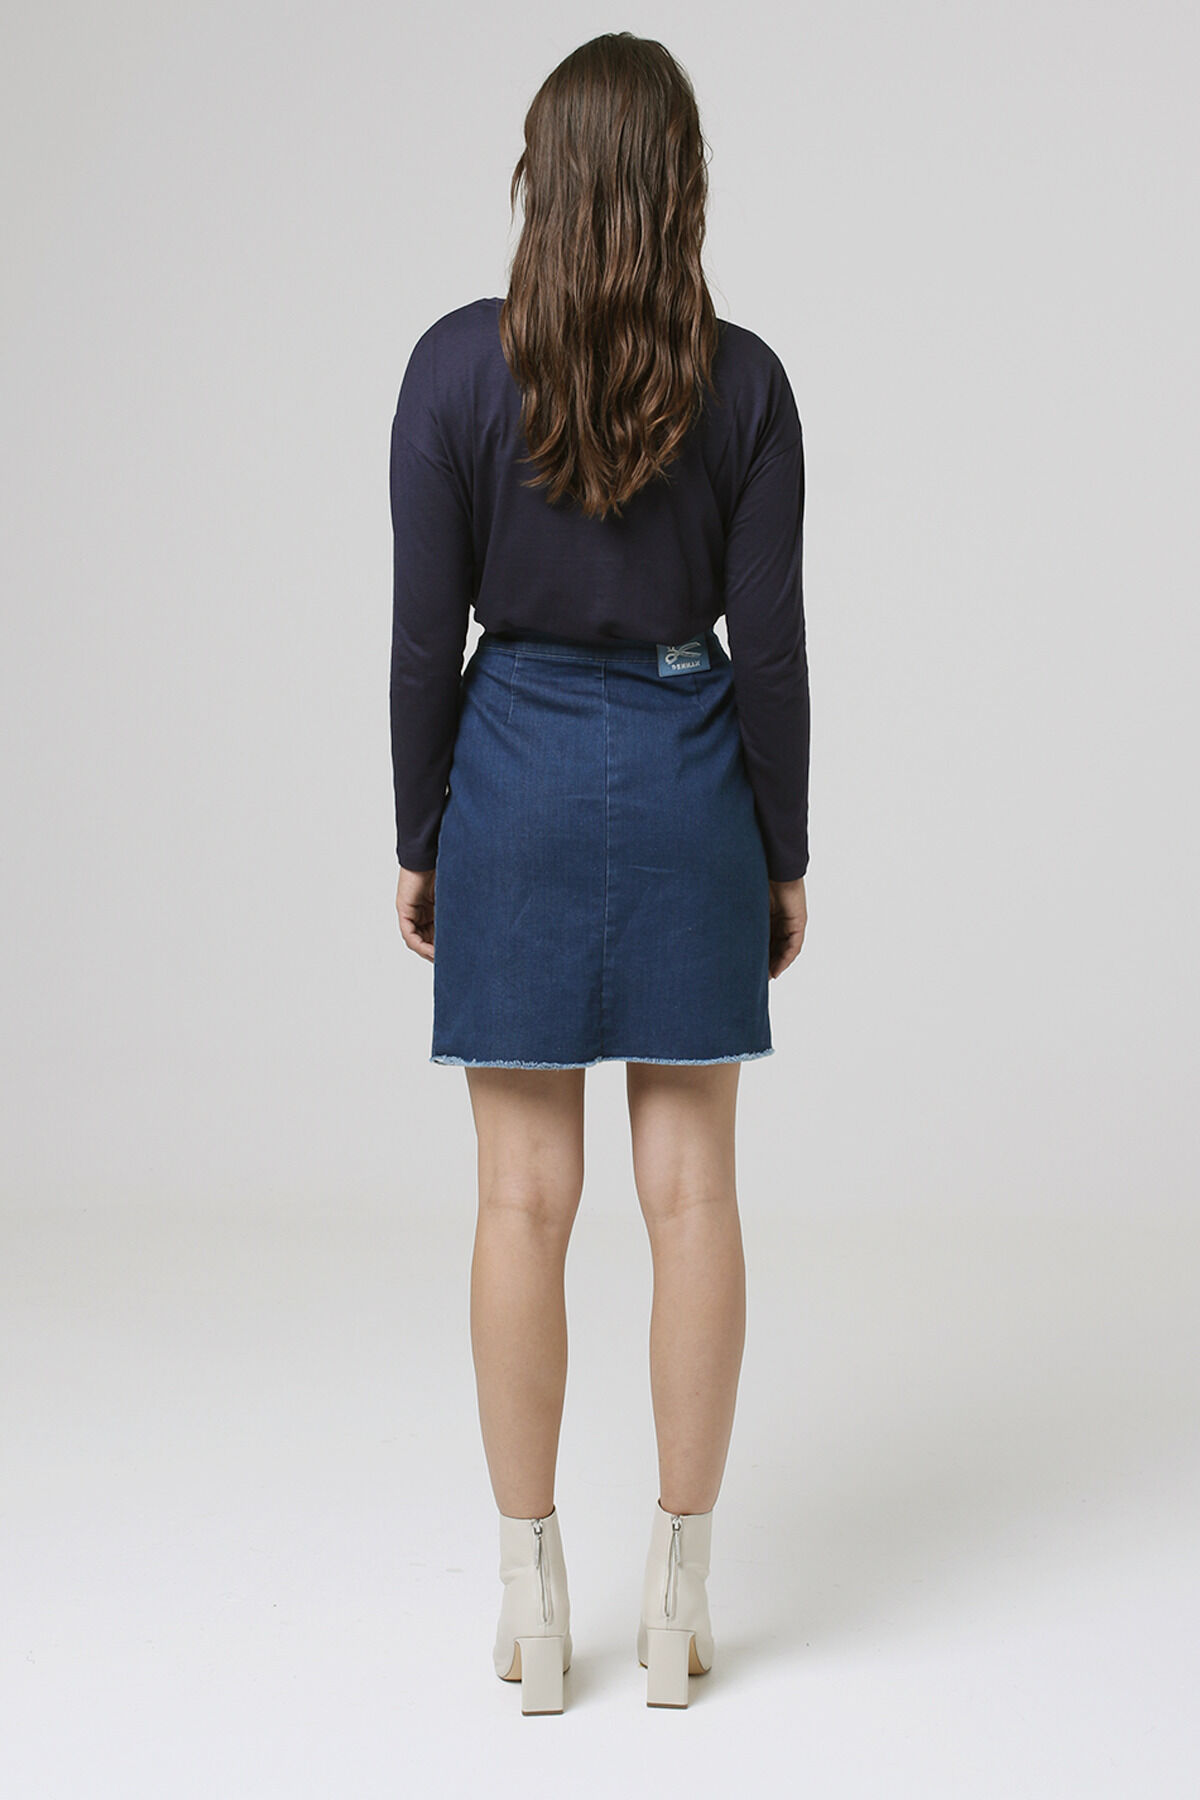 SALINAS SKIRT Indigo Stretch Denim - Knee Length